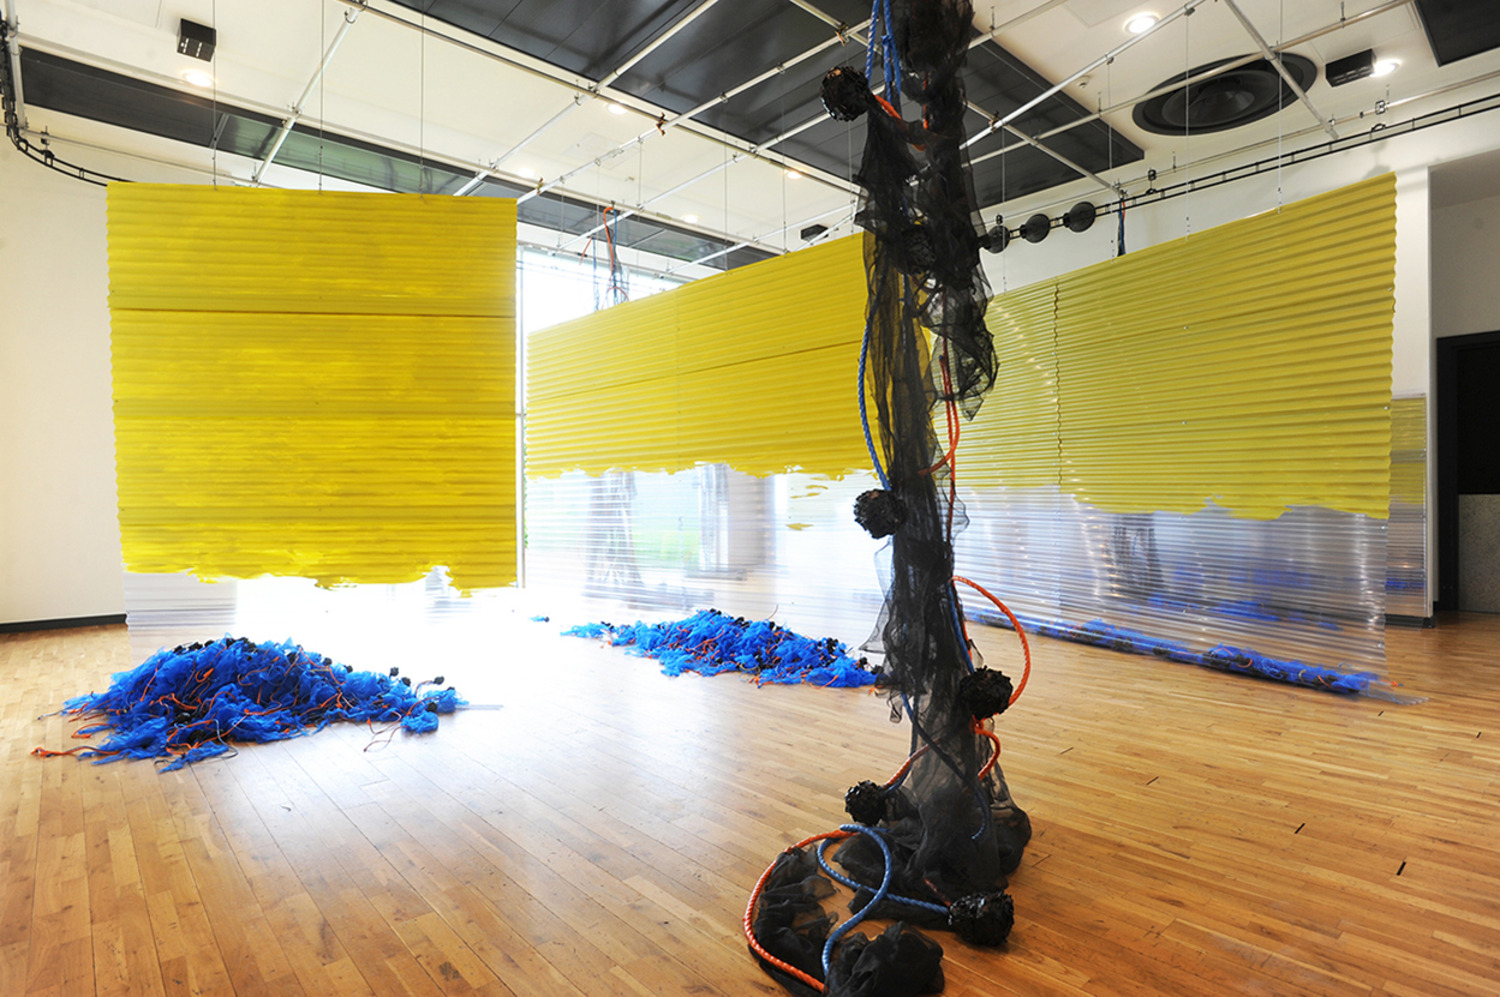 Cross Block Split, 2014, Corrugated PVC sheeting, rope, electrical tape, paint and debris netting, 10 x 10 meters